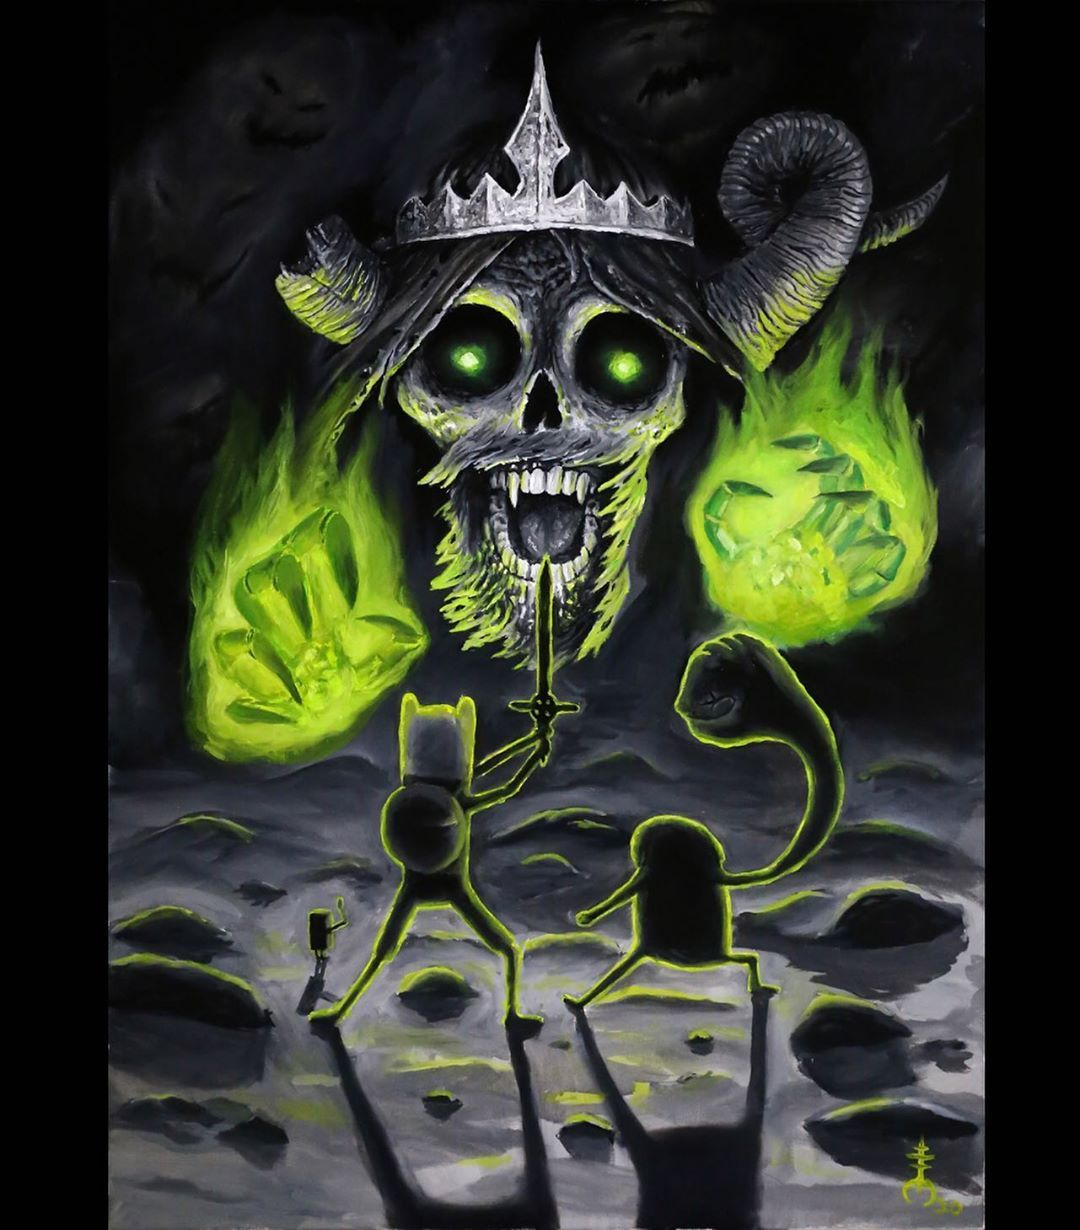 Here's another commissioned painting.  Oil on canvas 50x70 The lich is one of my favorite adventure time characters. Which one do you like best? Follow @mori_occultum Done with @intenzetattooink @fkirons #flux @eliteneedle @auafee_supply @tattooarmourpro To get tattooed contact info@mori-occultum.com  #intenzefamily #fkironsproteam #fkirons  #ink #tattooist #tattoo  #tattooed  #tattoolife#tattoocommunity #tattooistartmag  #sullenclothing #realistic  #inkedmag #tattoodo #munich  #skinartmag #theb